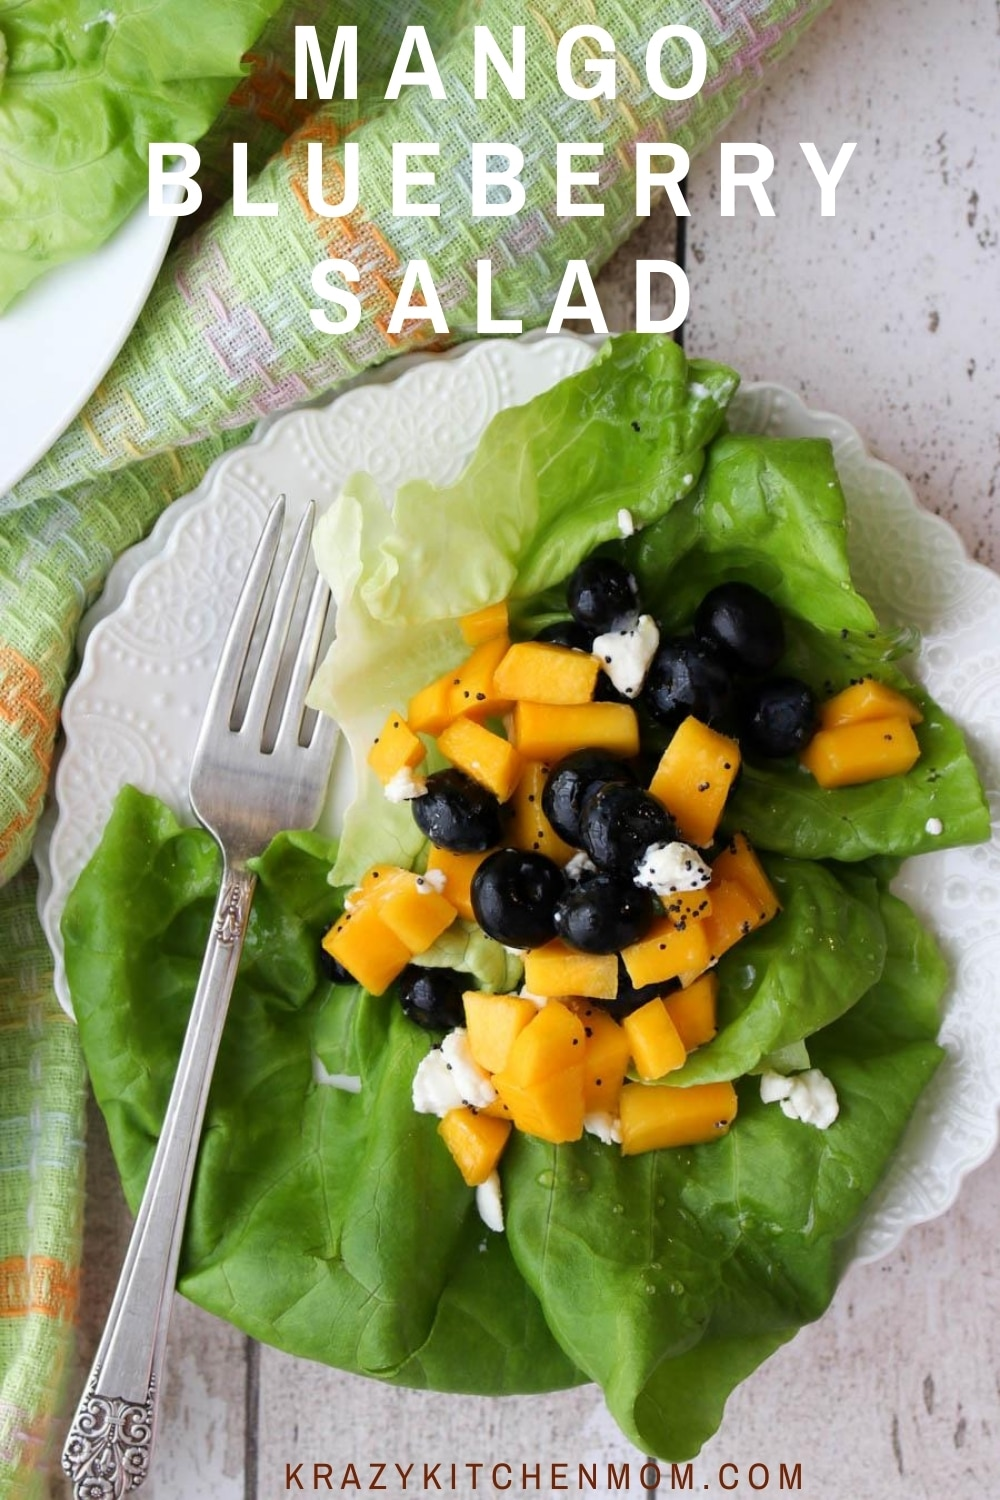 This salad is as beautiful to look at as it is to eat.  The freshness jumps off the plate with the bright juicy fruits and the tart goat cheese drizzled lightly with vinegar and olive oil.  via @krazykitchenmom